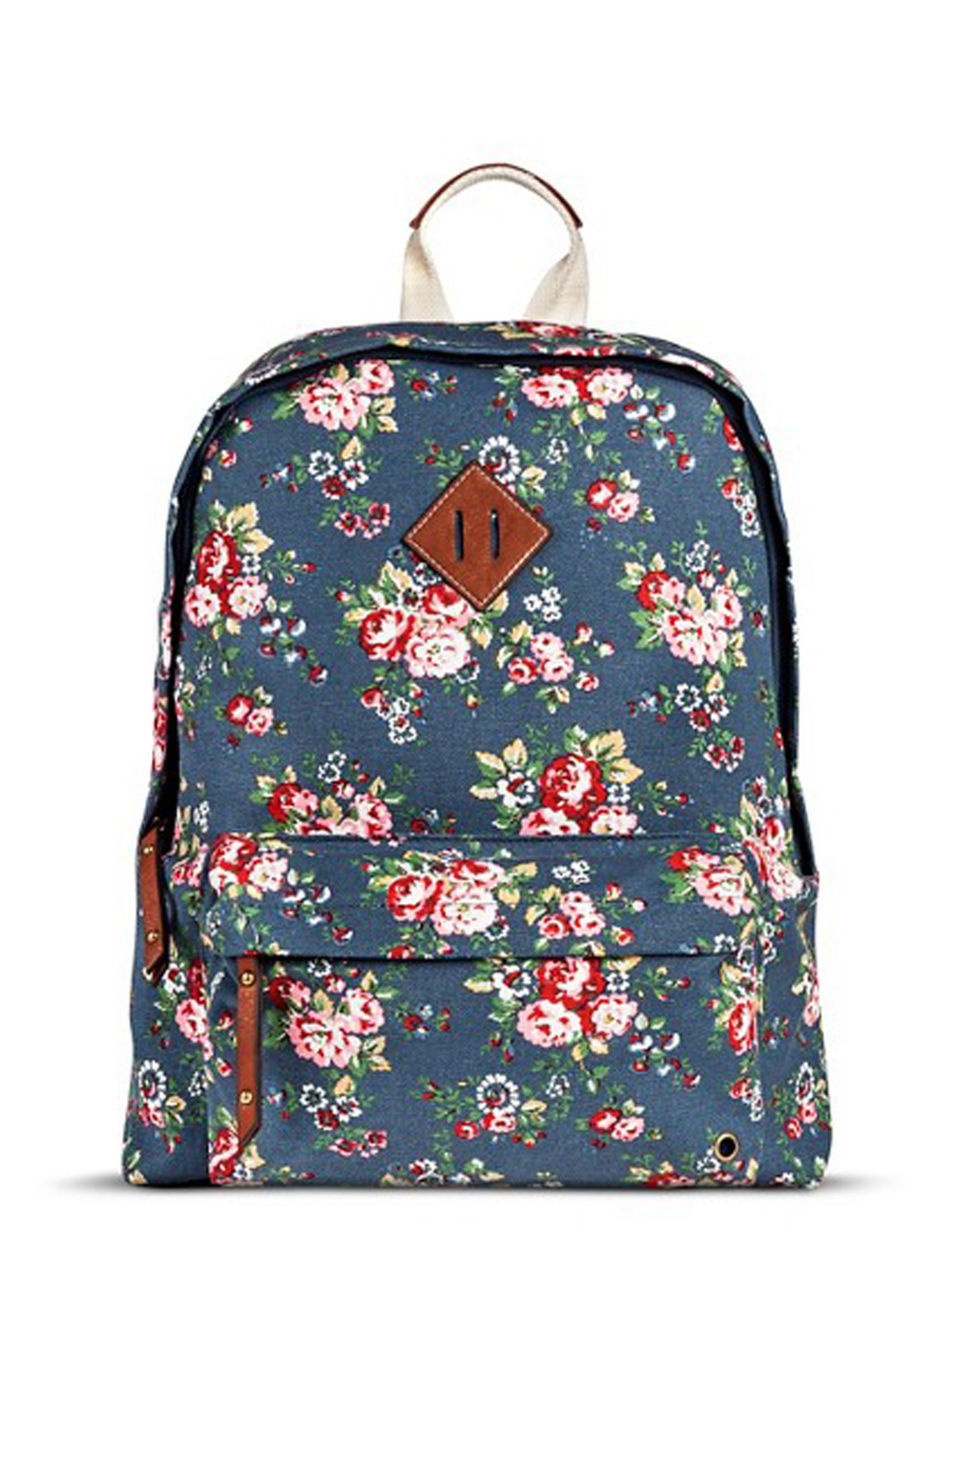 Cool Backpacks For Teenage Girls oSKyazg9